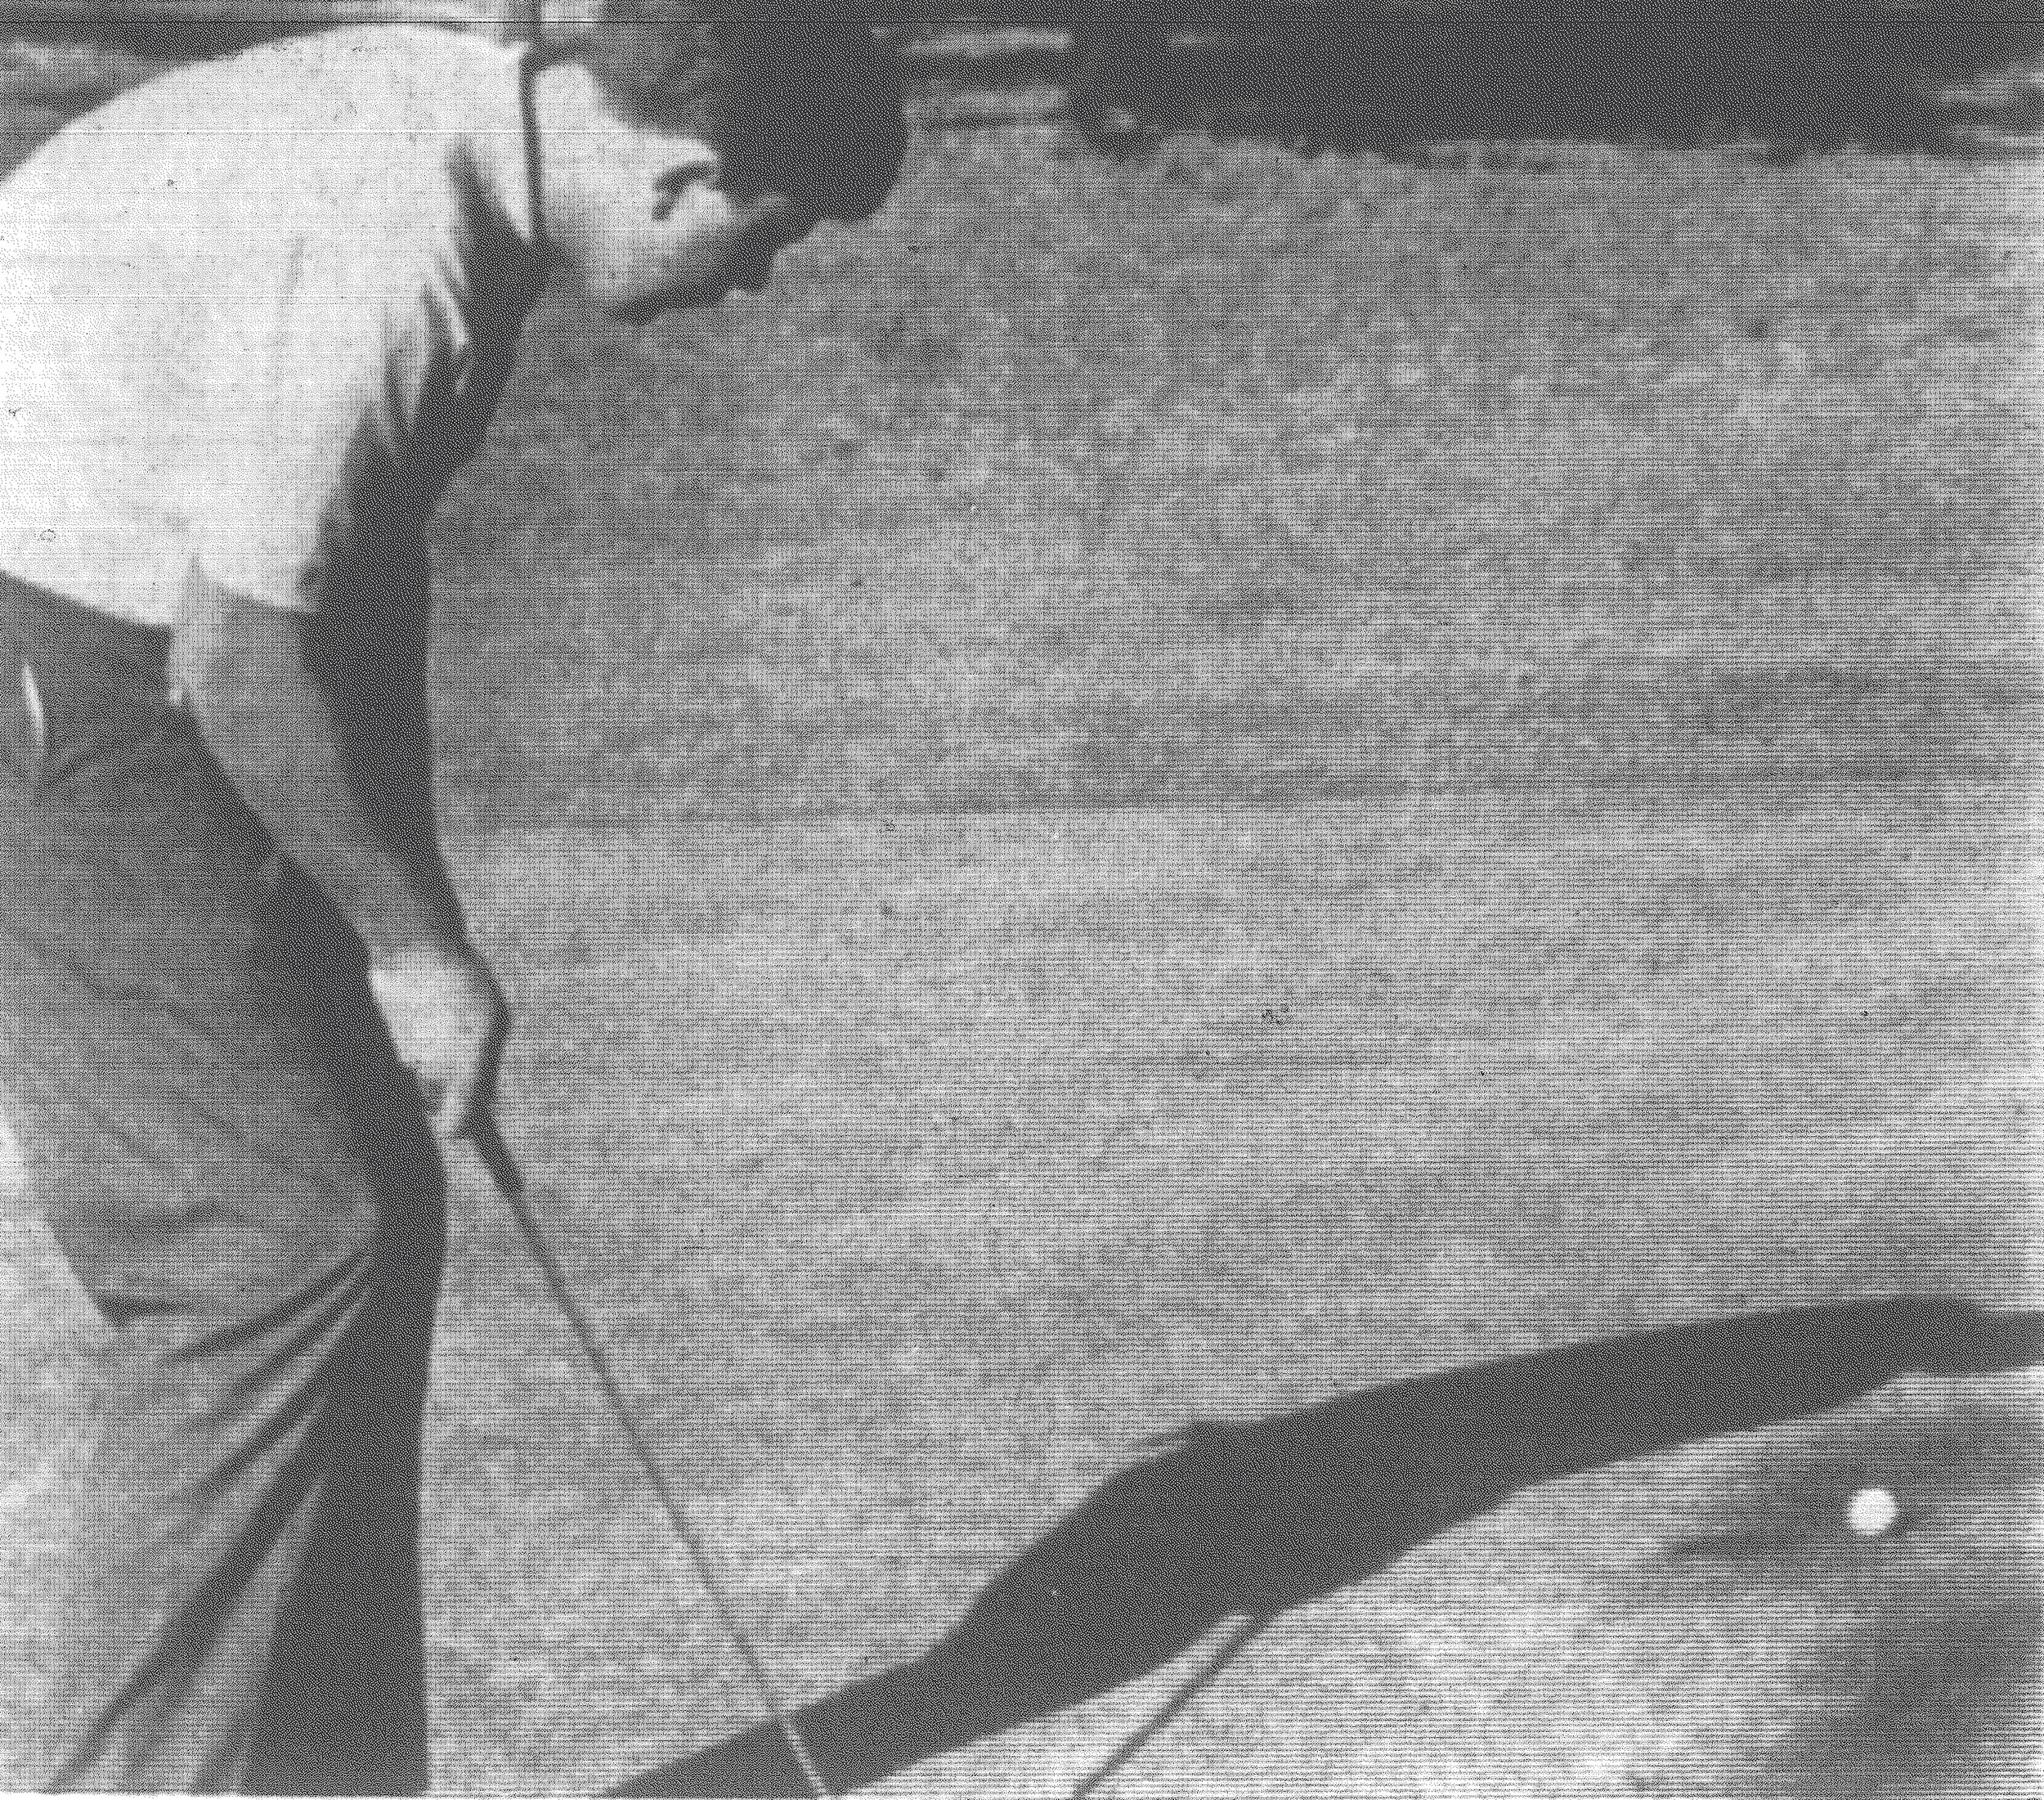 1968 - Sumter's Scotty Broome watches as his putt just misses the cup on No. 13 at Sunset Country Club during a match against Hillcrest. Broome took medalist honors for the day with a 72 as the Gamecocks edged Hillcrest 15-12.